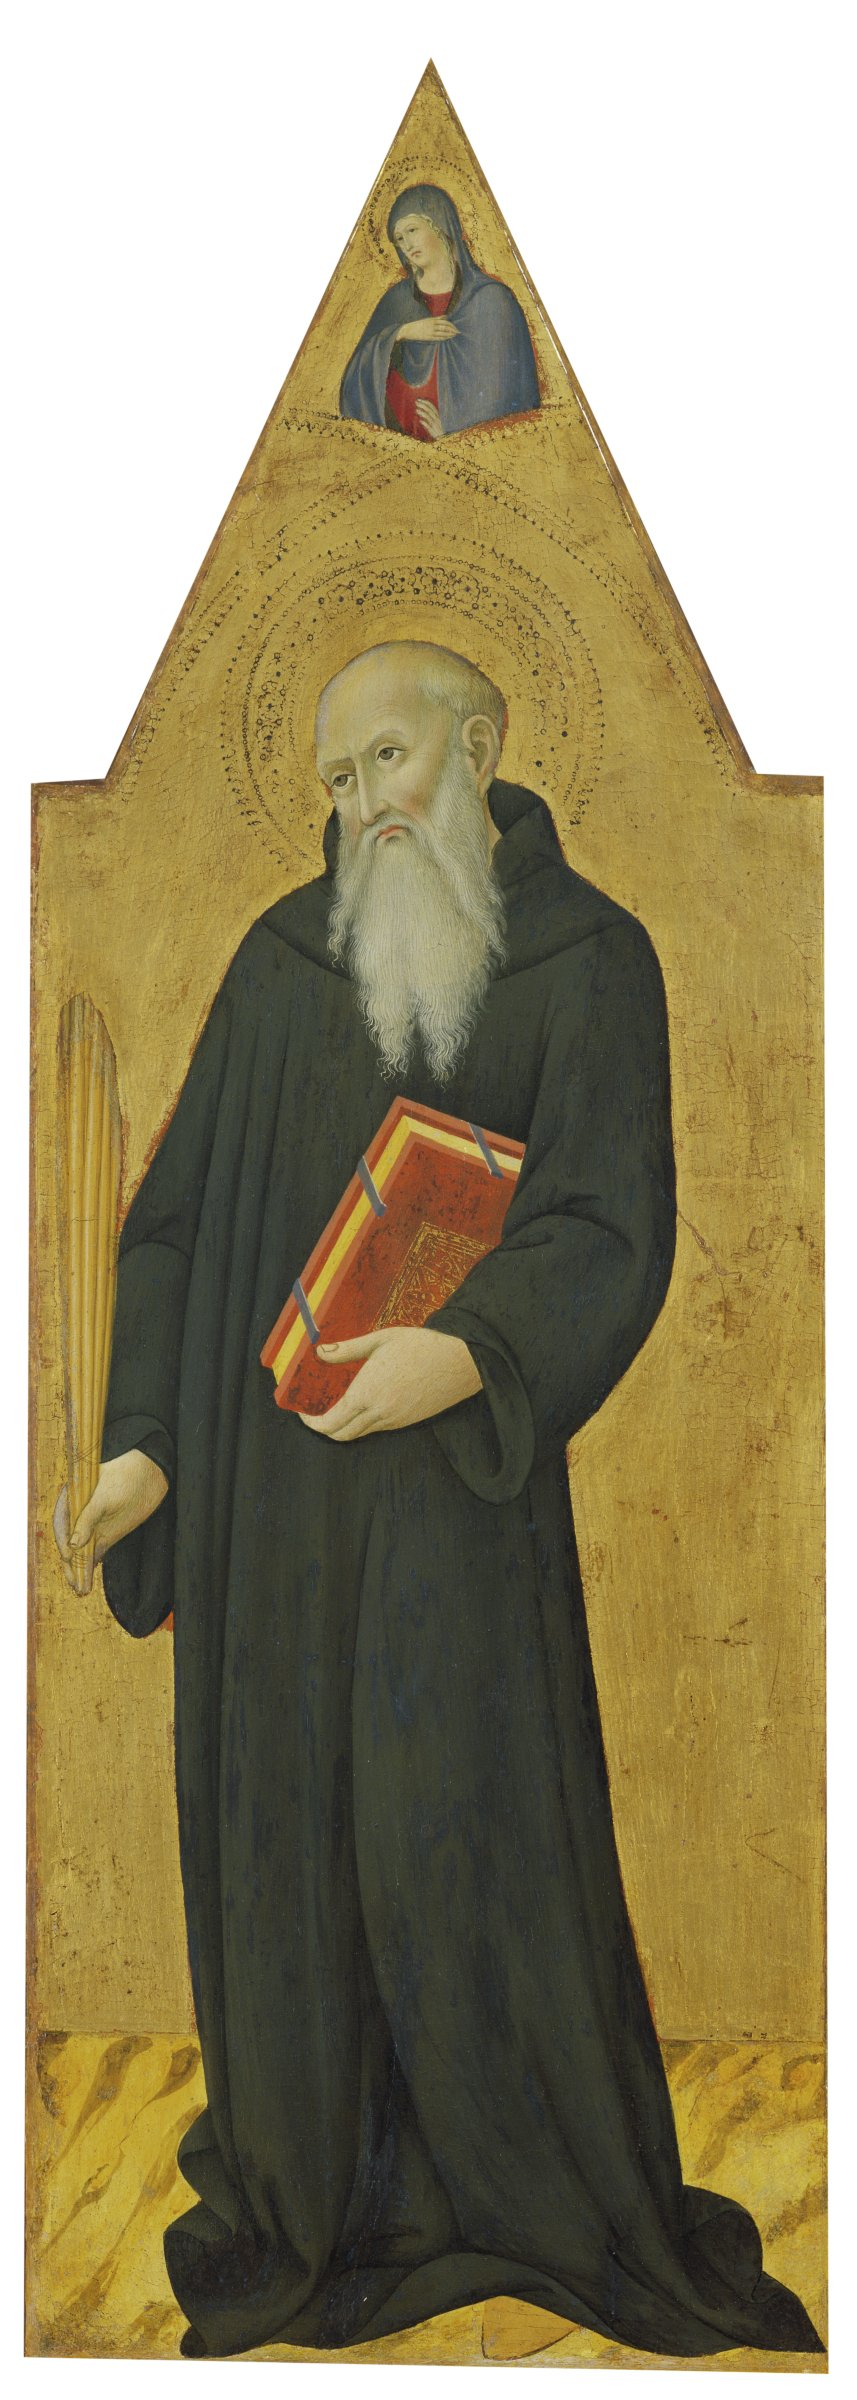 In this narrow, vertical painting, Saint Benedict stands holding a book and a quill pen. Above his head hovers the Virgin Mary, part of an Annunciation scene completed with the appearance of the angel Gabriel in the companion panel of Saint Augustine.